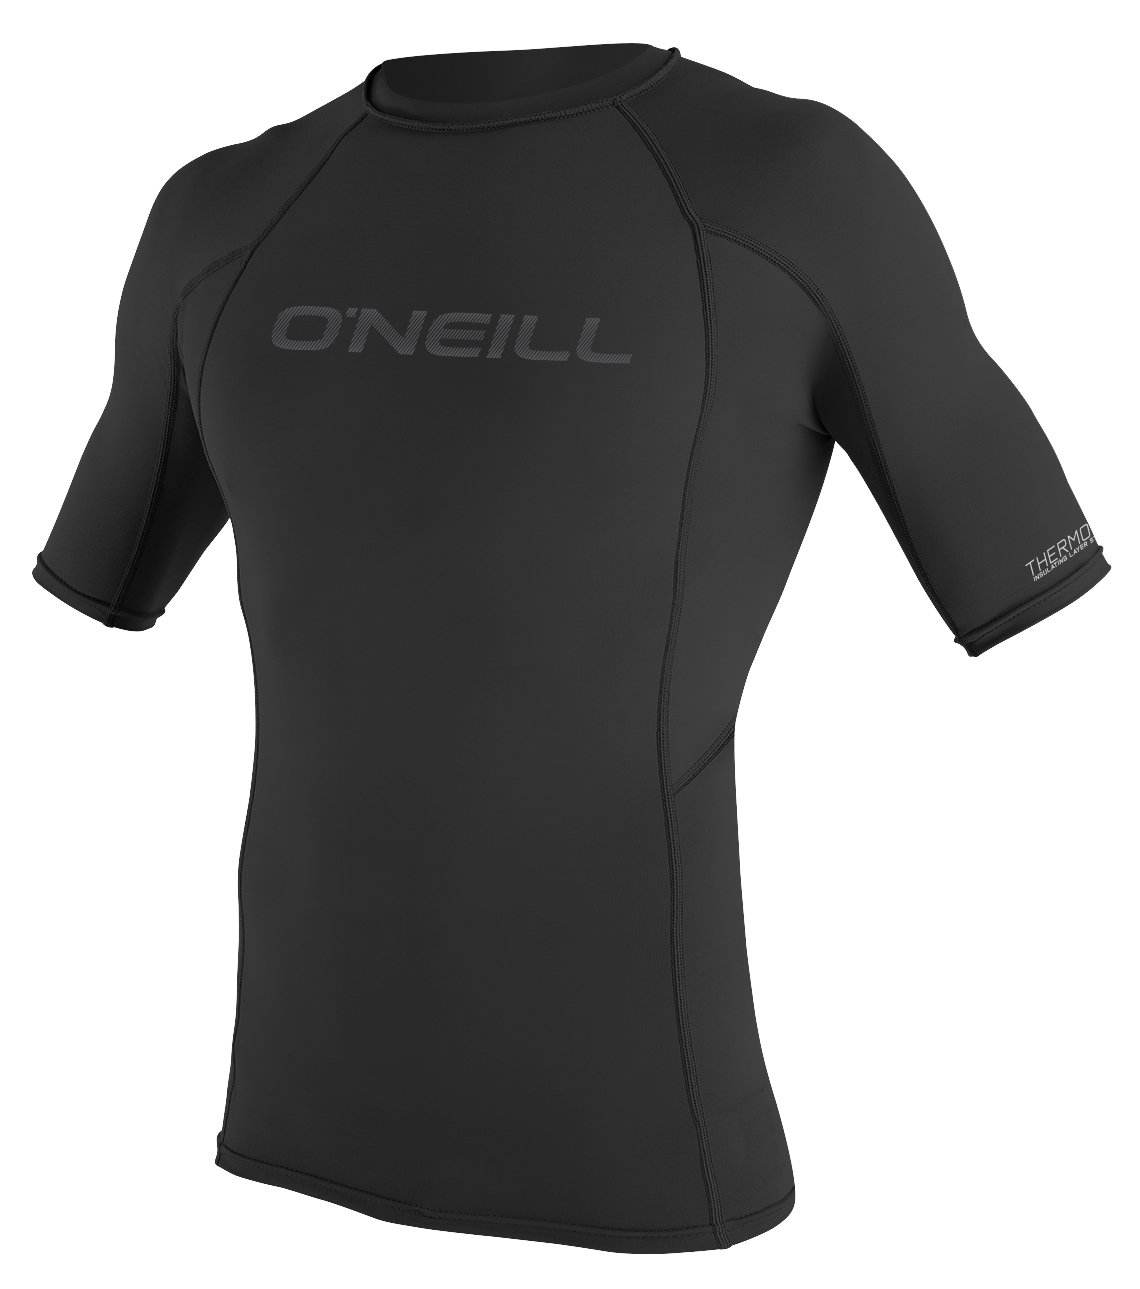 O'Neill Men's Thermo X Short Sleeve Insulative Top, Black, XX-Large